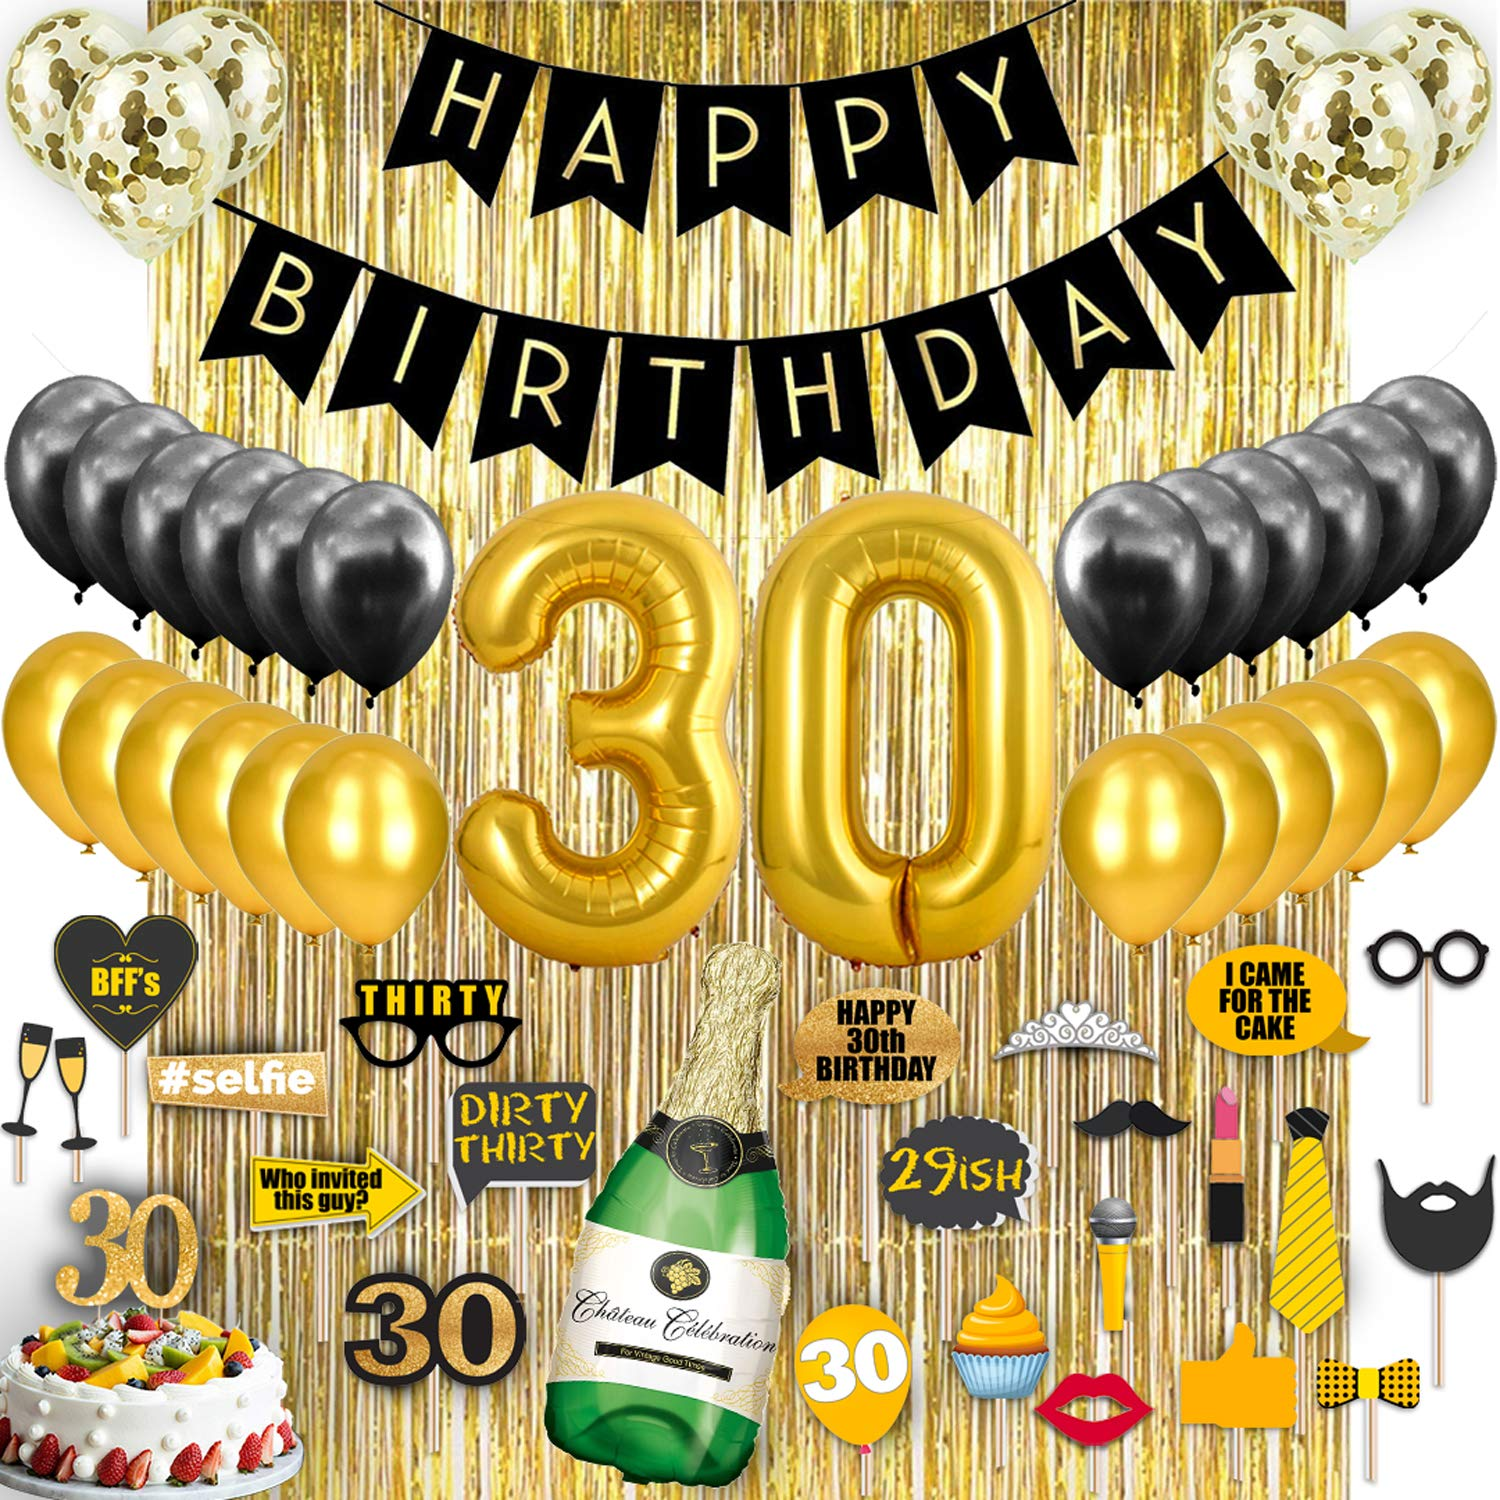 Dirty Thirty Balloons 30th Birthday Party Balloon Letters Decor Gold Balloons Happy Birthday Letter Balloons Decorations Banner Dirty 30